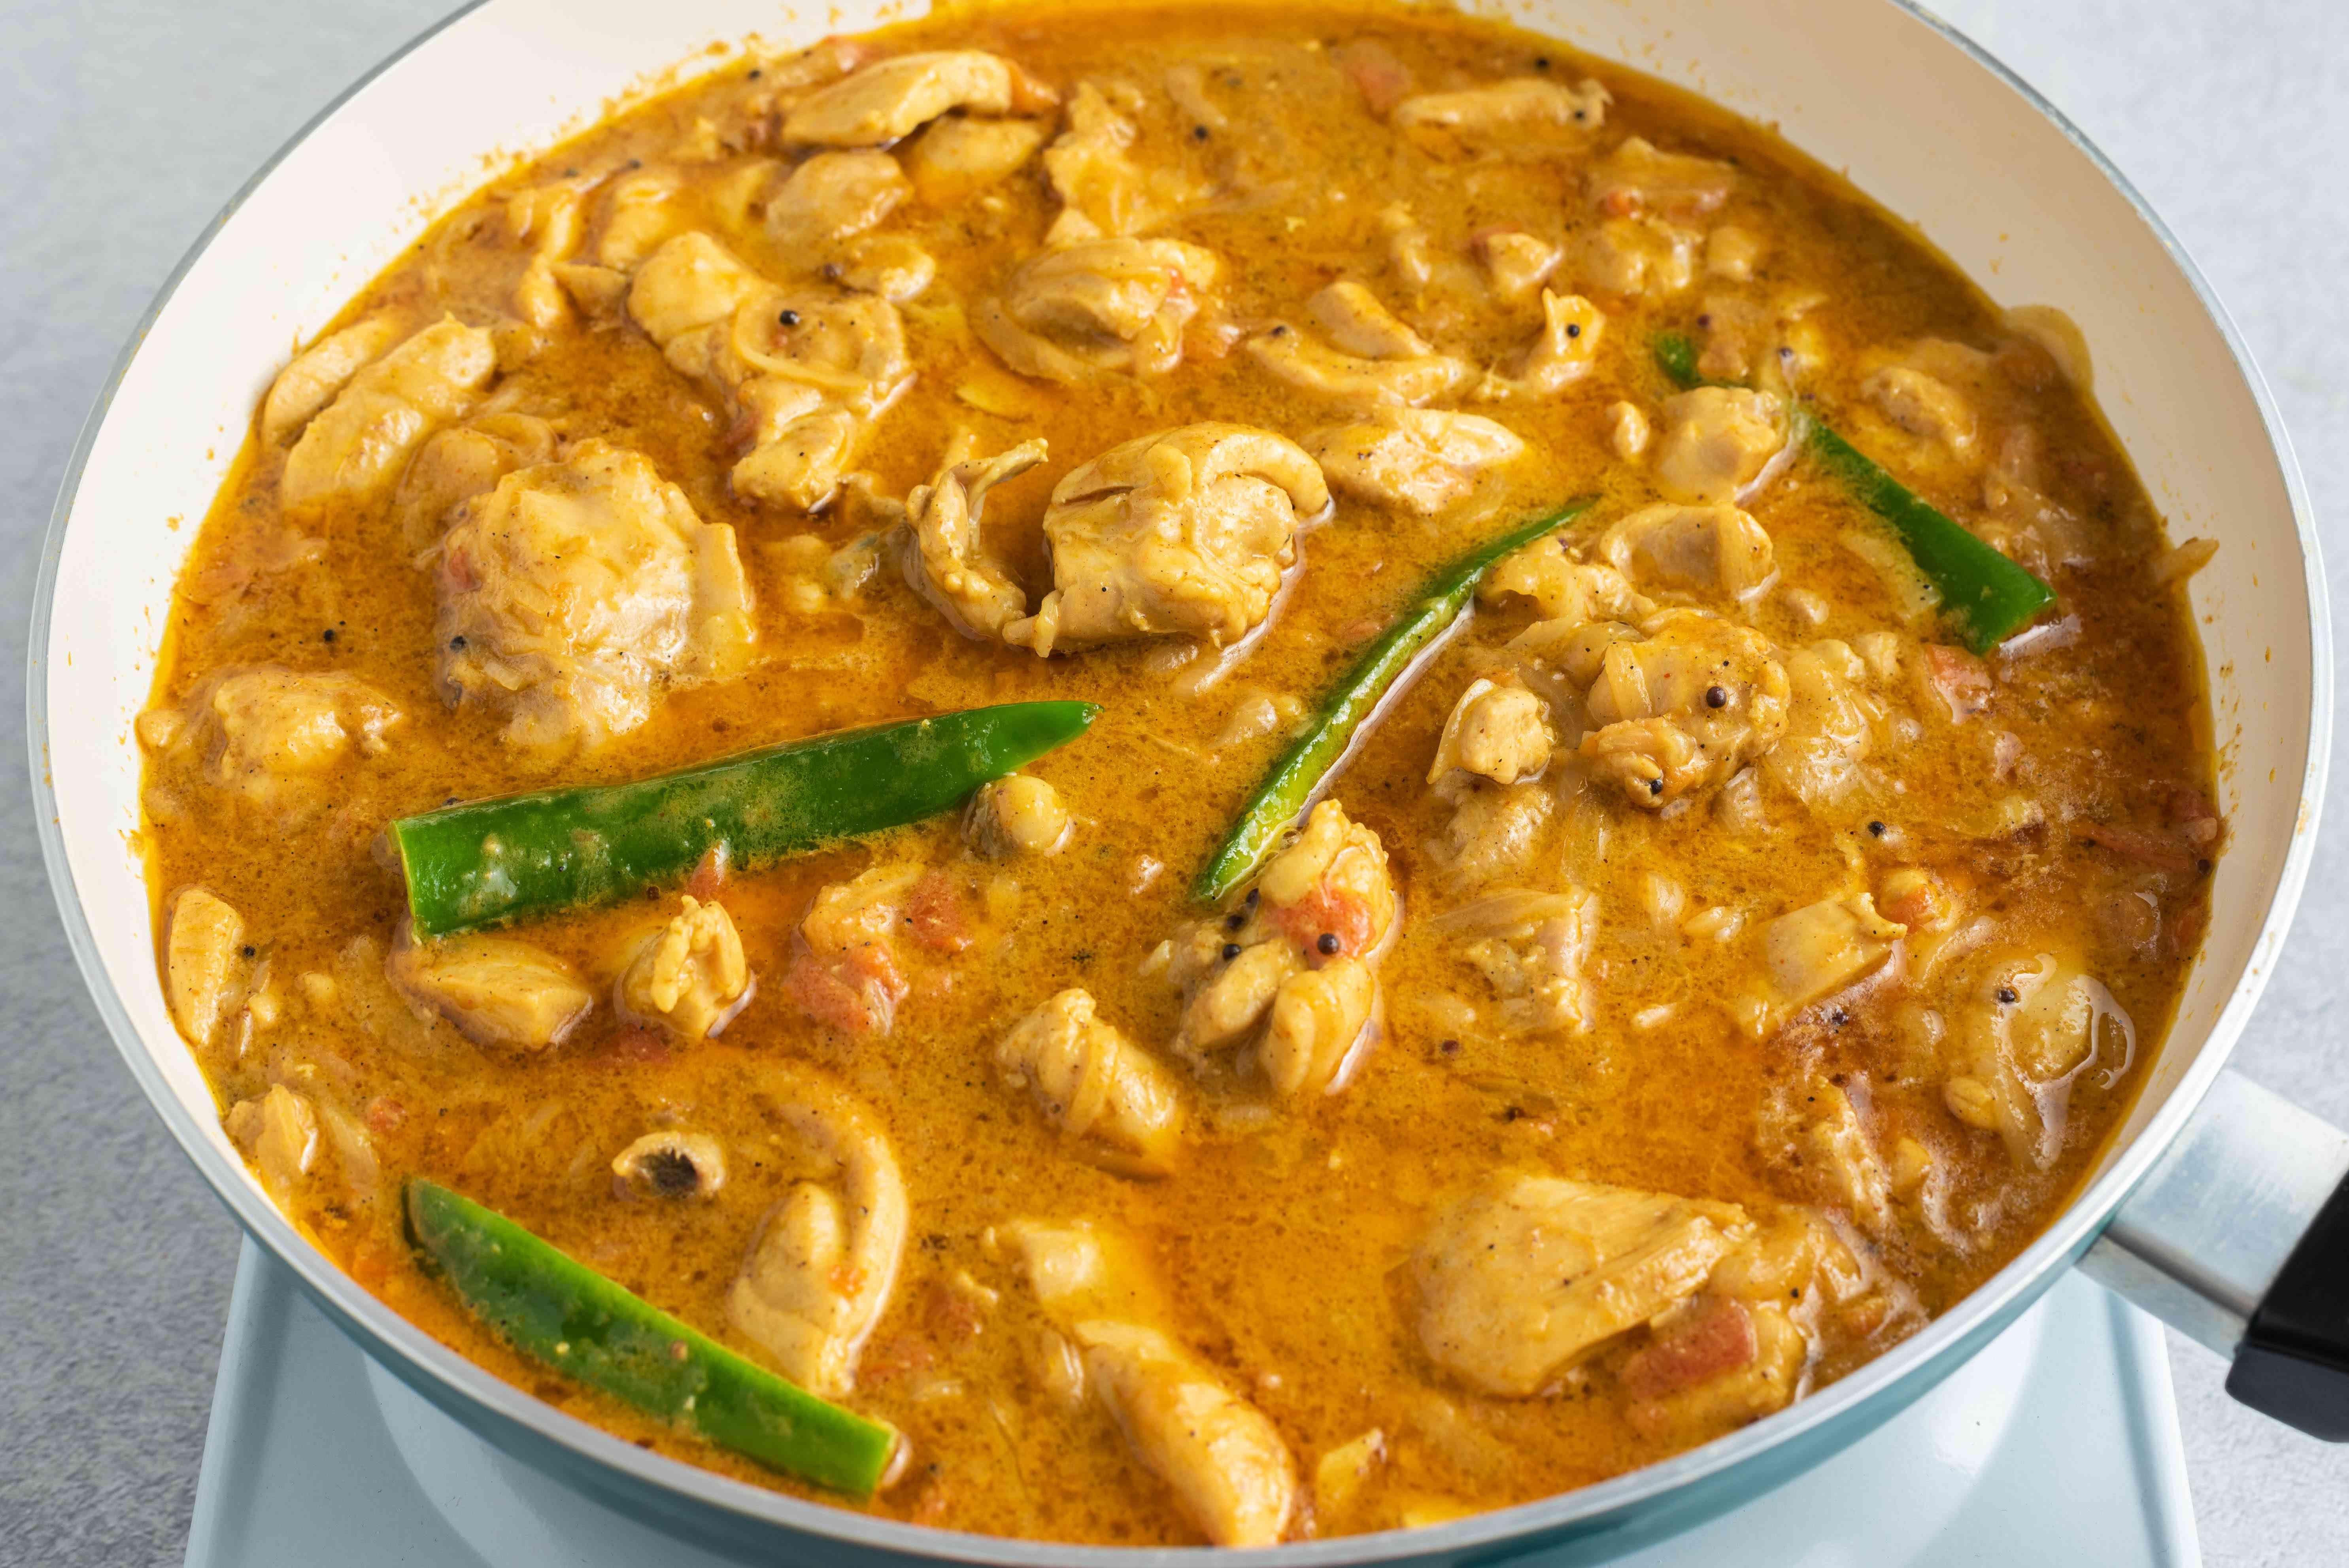 South Indian-Style Chicken Curry with green chiles in a pan